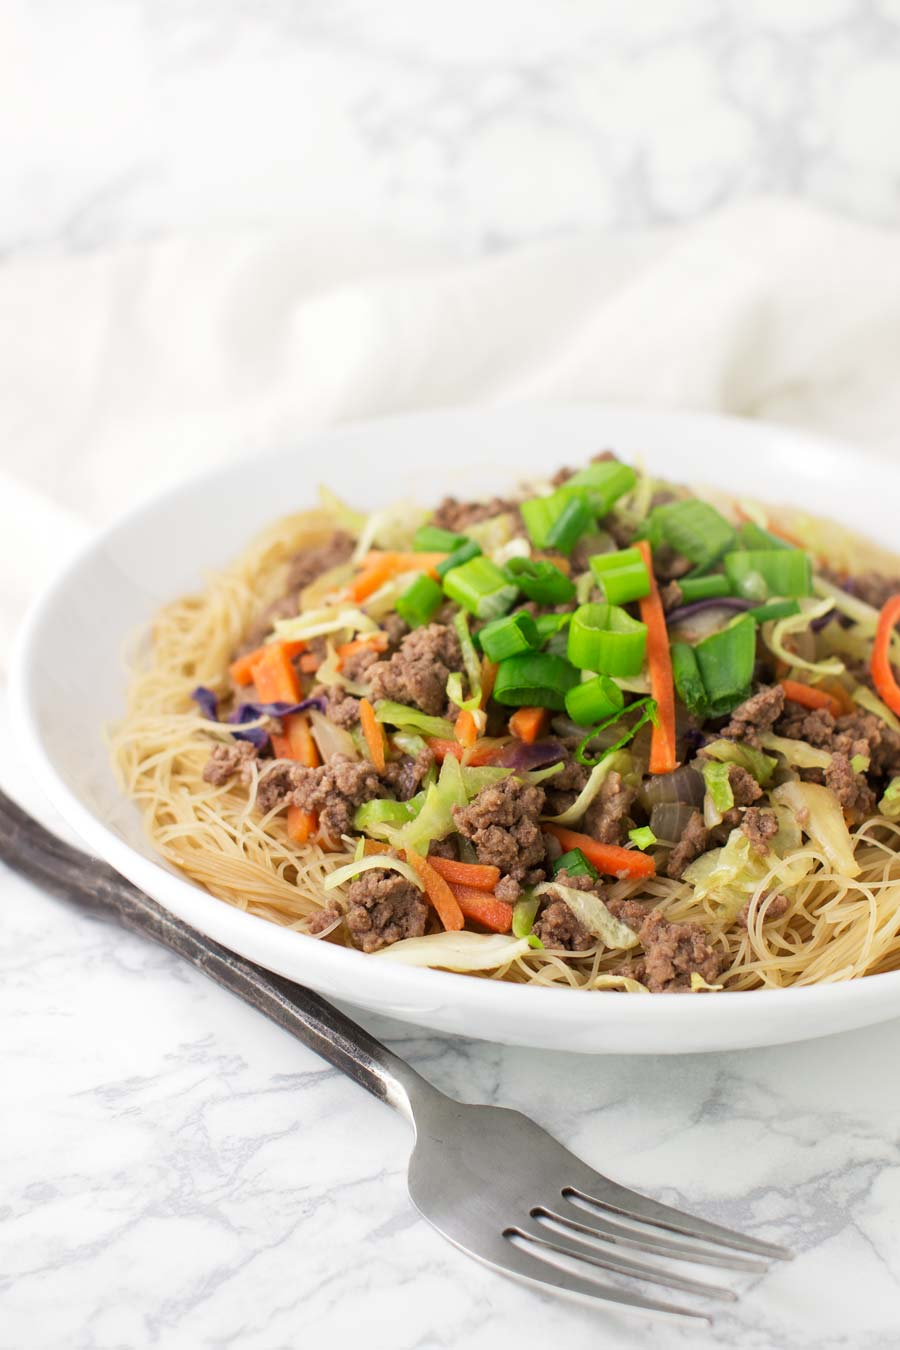 Szechuan Noodles recipe from acleanplate.com #paleo #aip #glutenfree